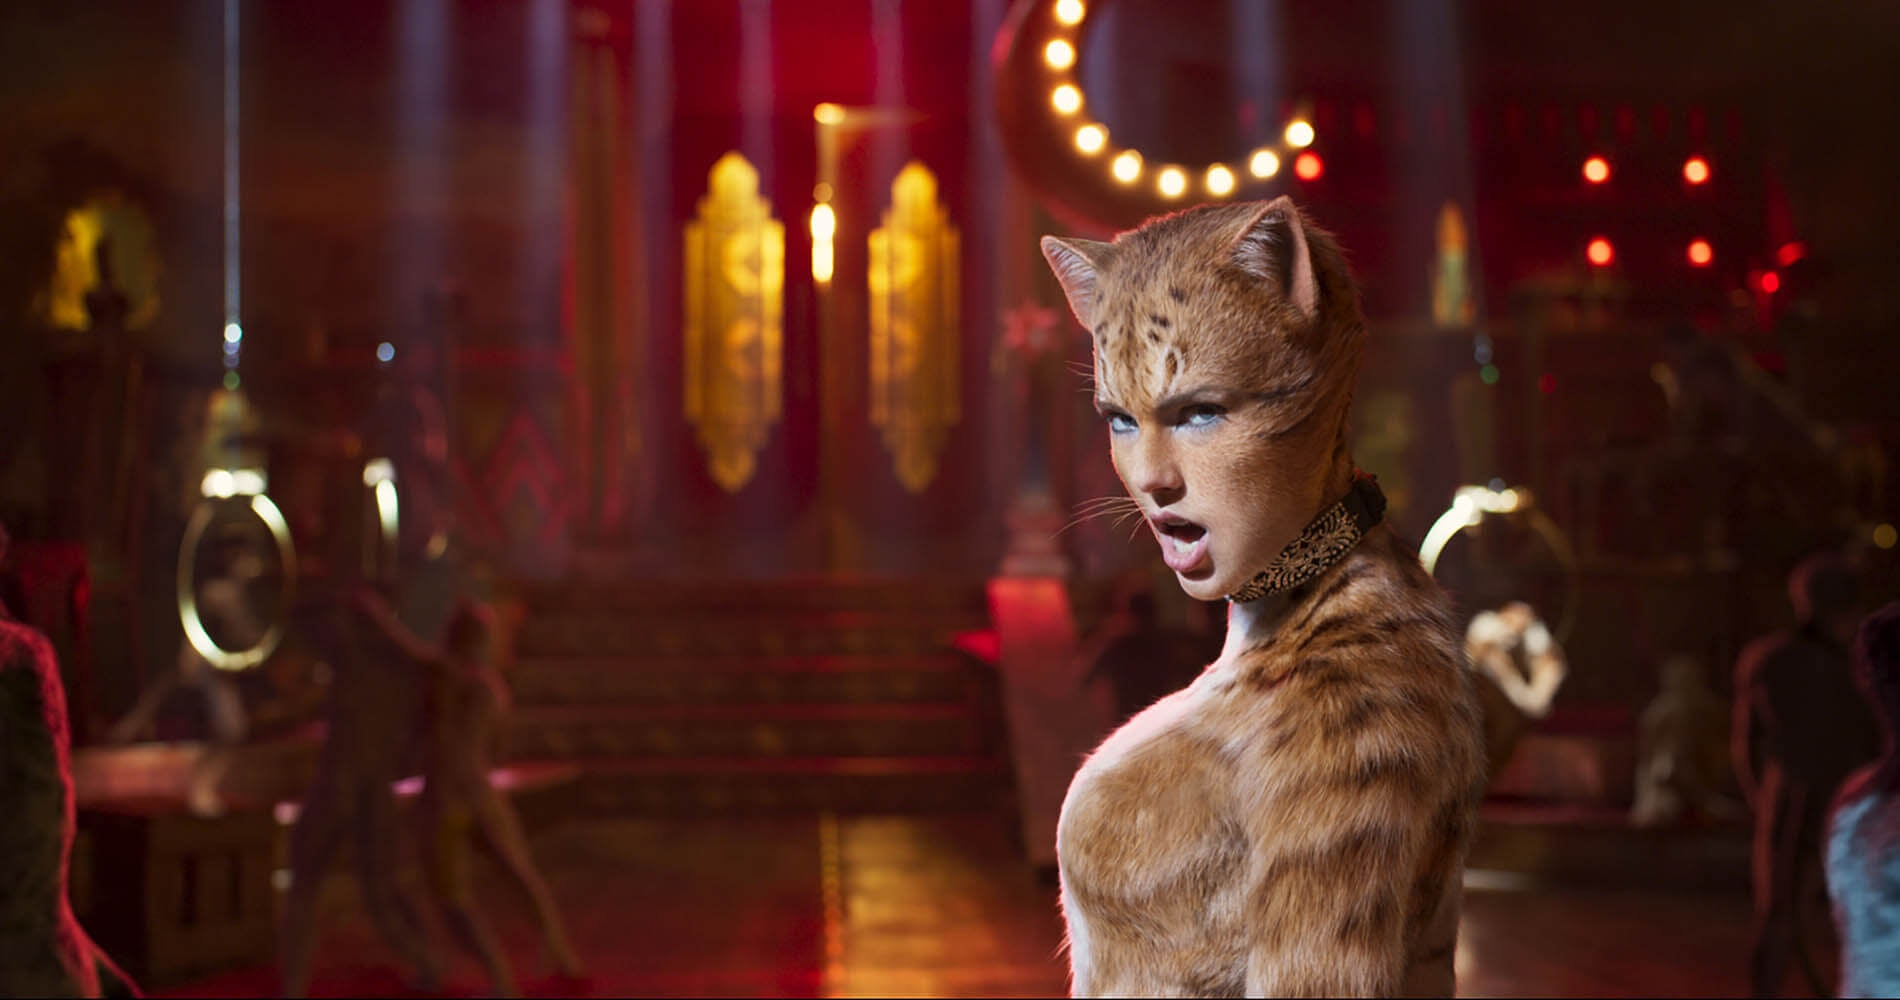 All The Differences In \u0027Cats\u0027 The Movie Vs. The Original Musical